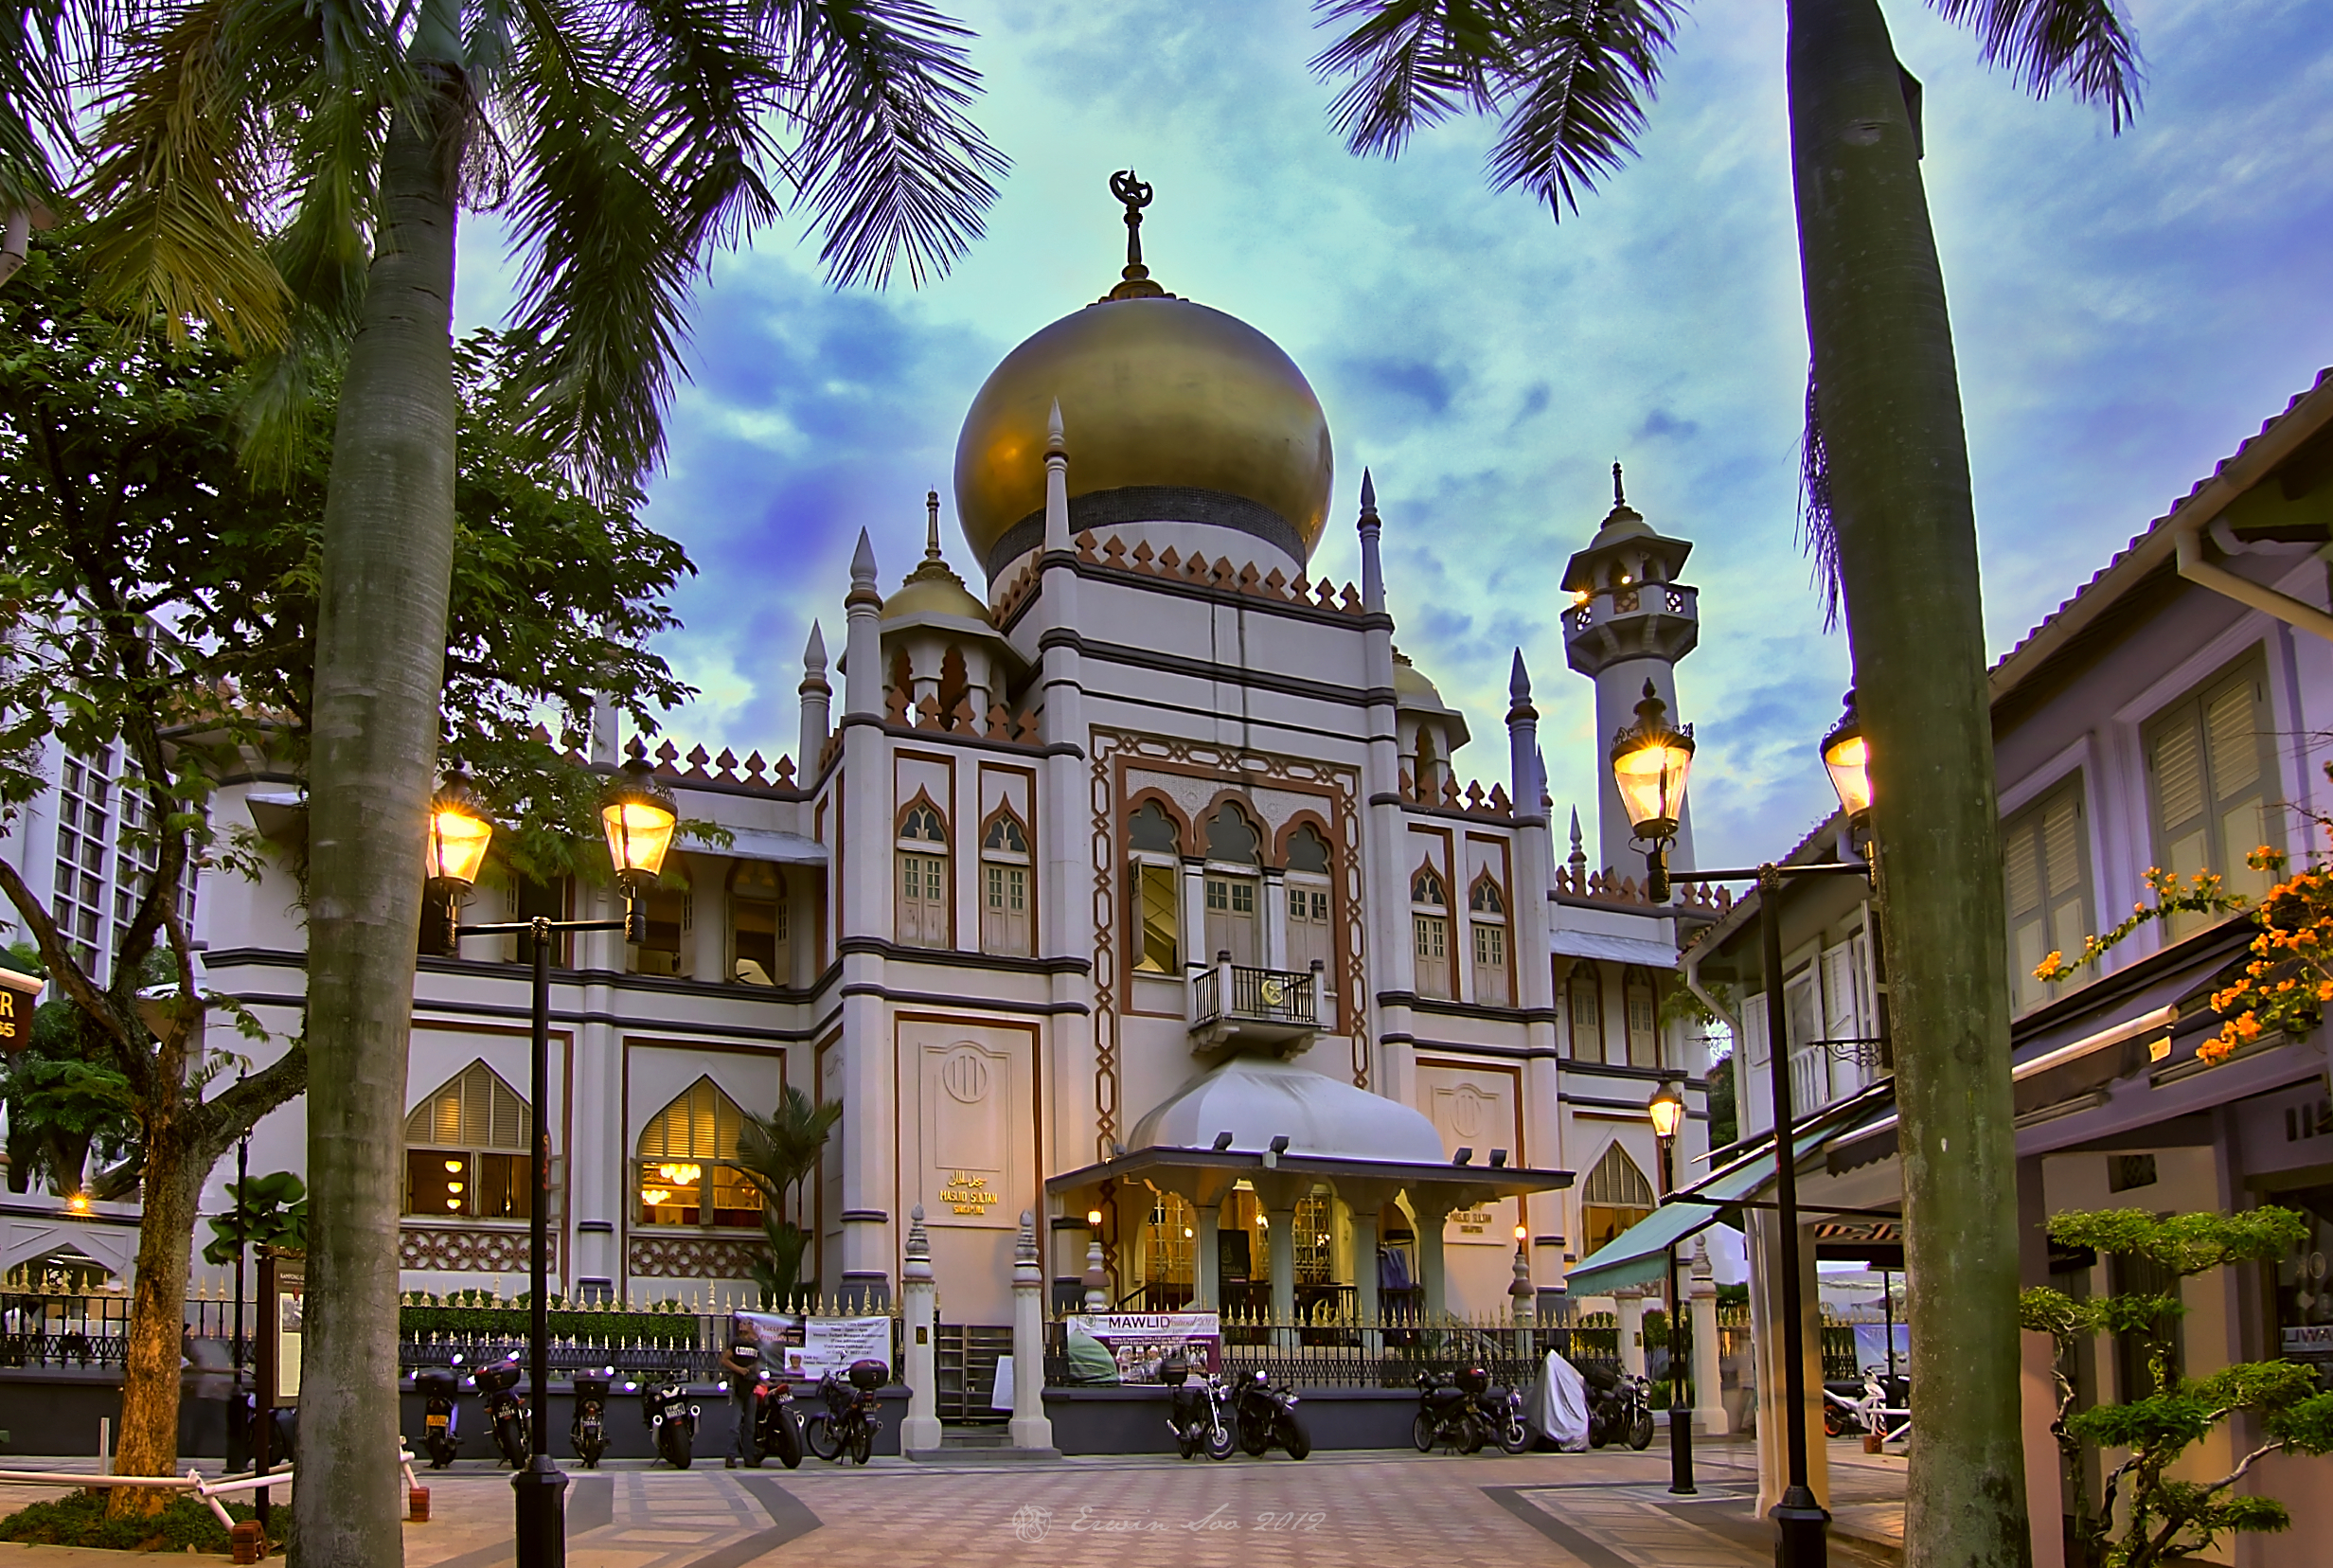 Sultan mosque photo